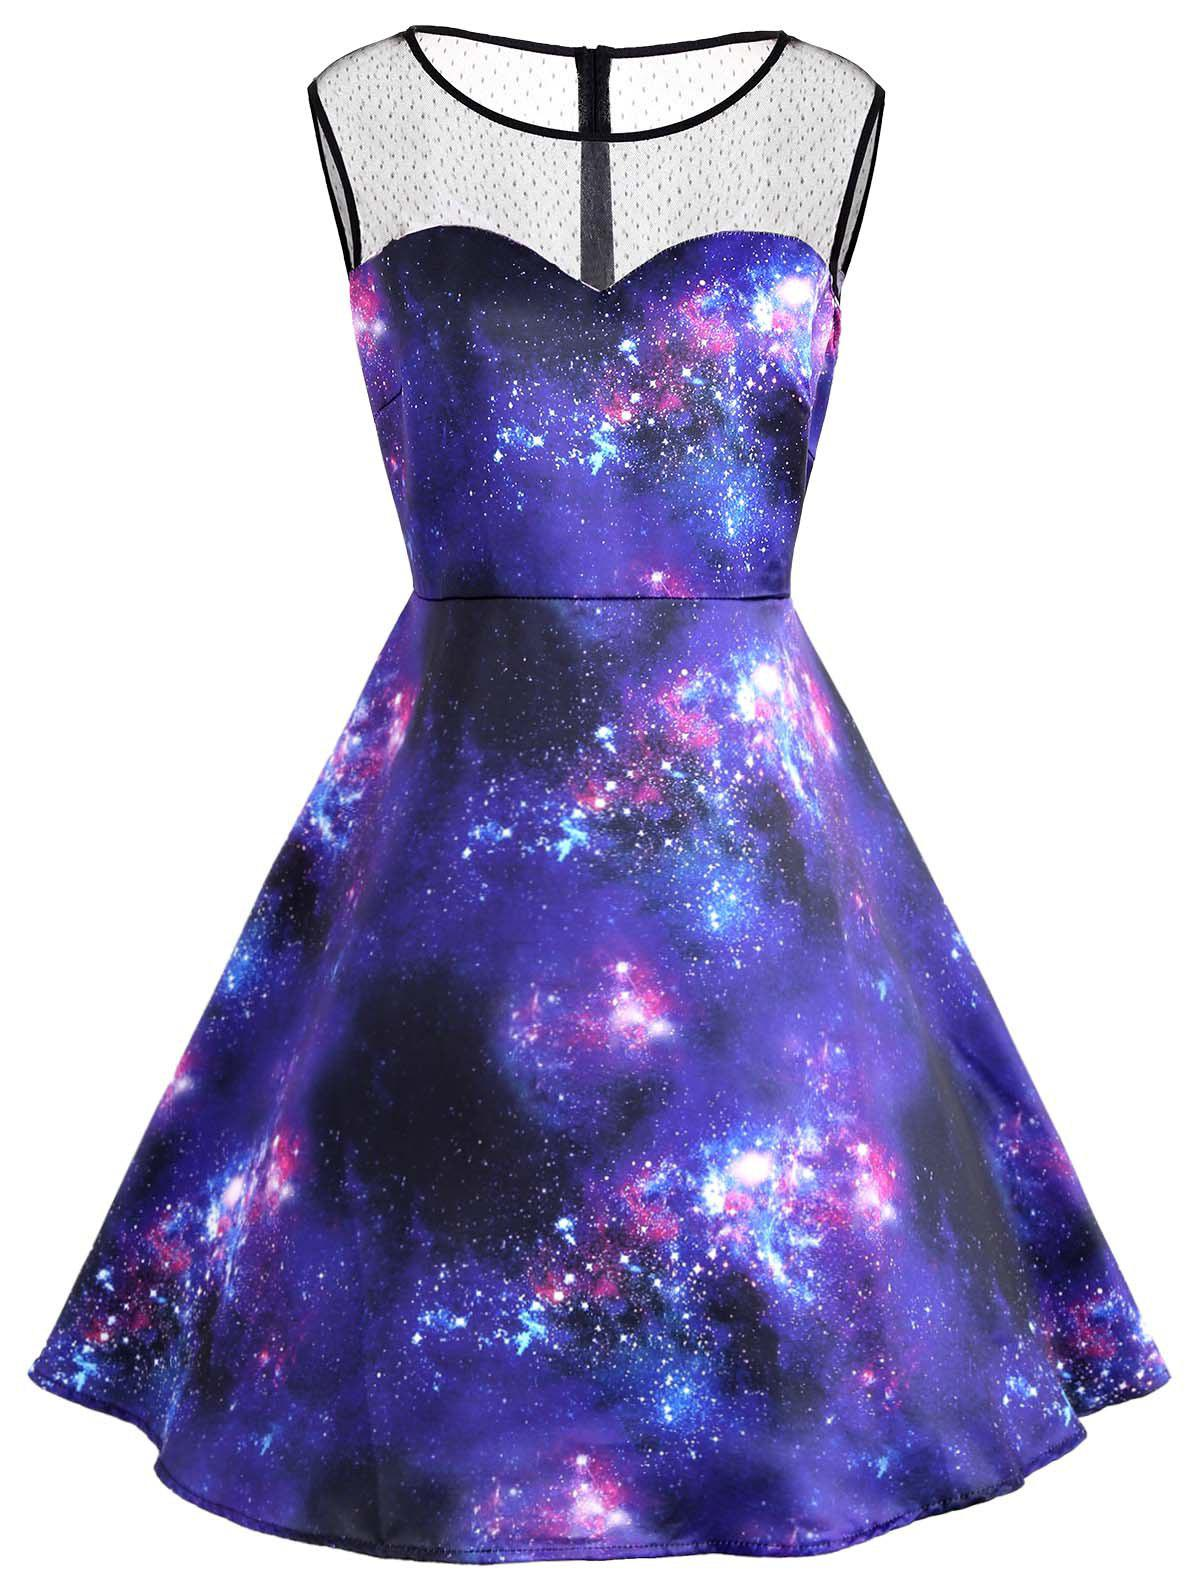 Galaxy Print Plus Size Sleeve Vintage DressWOMEN<br><br>Size: 5XL; Color: BLUE; Style: Vintage; Material: Polyester; Silhouette: A-Line; Dresses Length: Knee-Length; Neckline: Round Collar; Sleeve Length: Sleeveless; Waist: High Waisted; Embellishment: Panel; Pattern Type: Print; With Belt: No; Season: Fall,Spring,Summer,Winter; Weight: 0.3300kg; Package Contents: 1 x Dress;